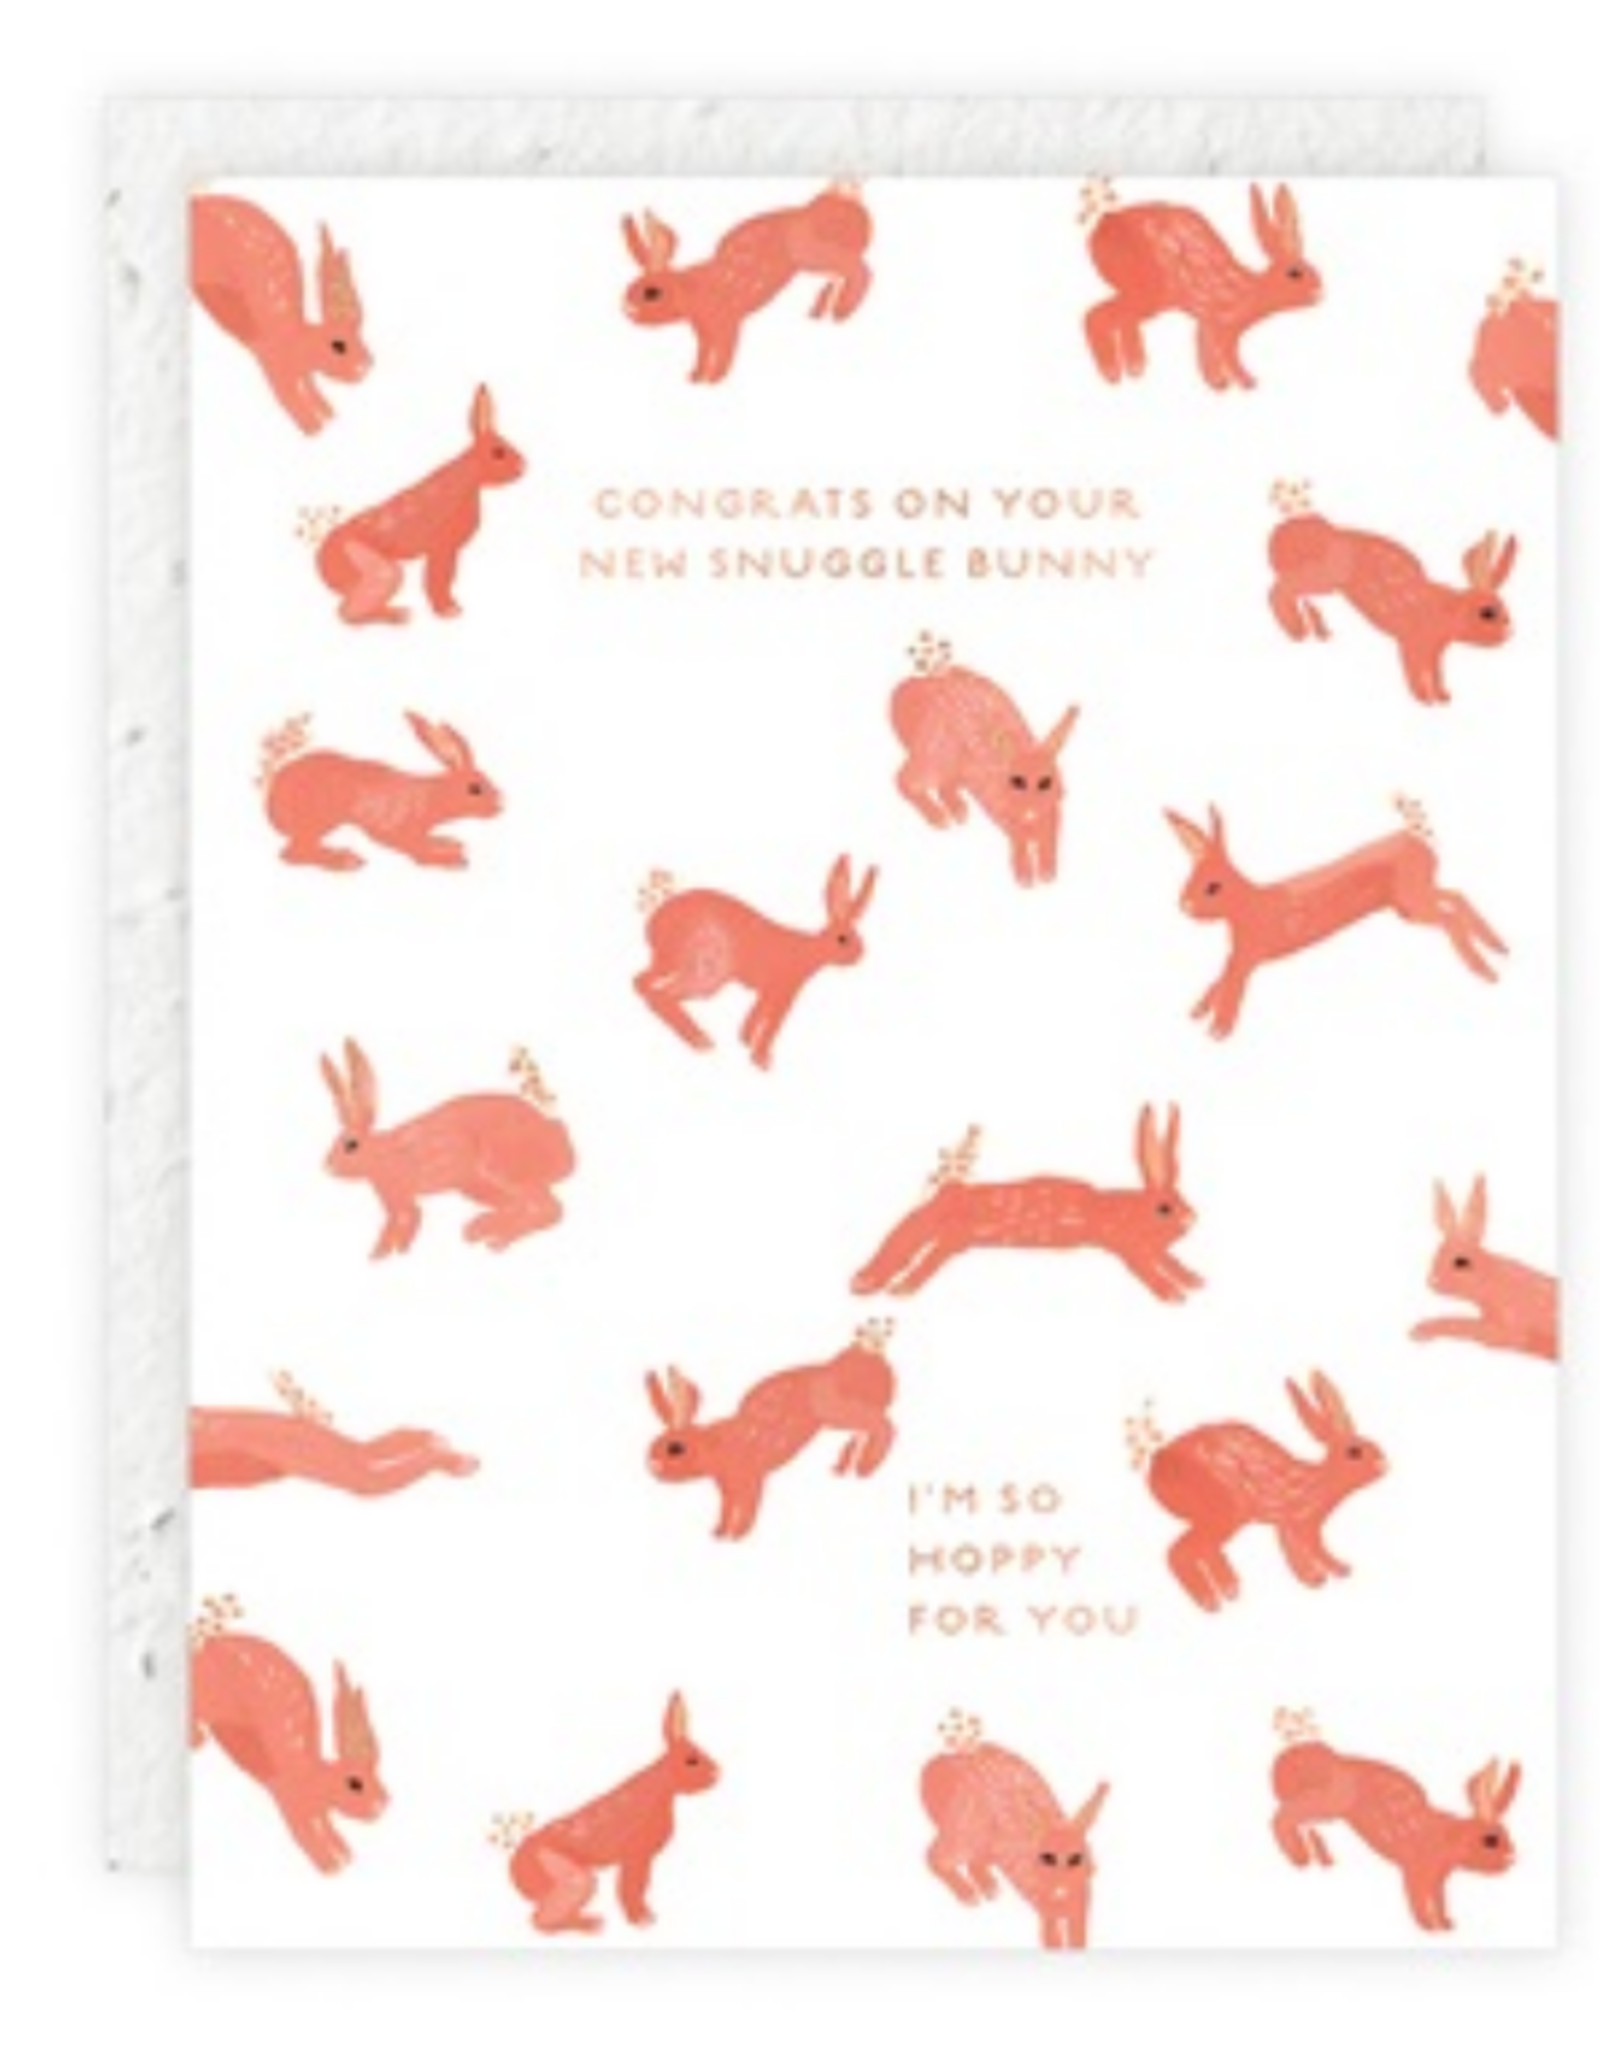 Congrats On Your New Snuggle Bunny Greeting Card